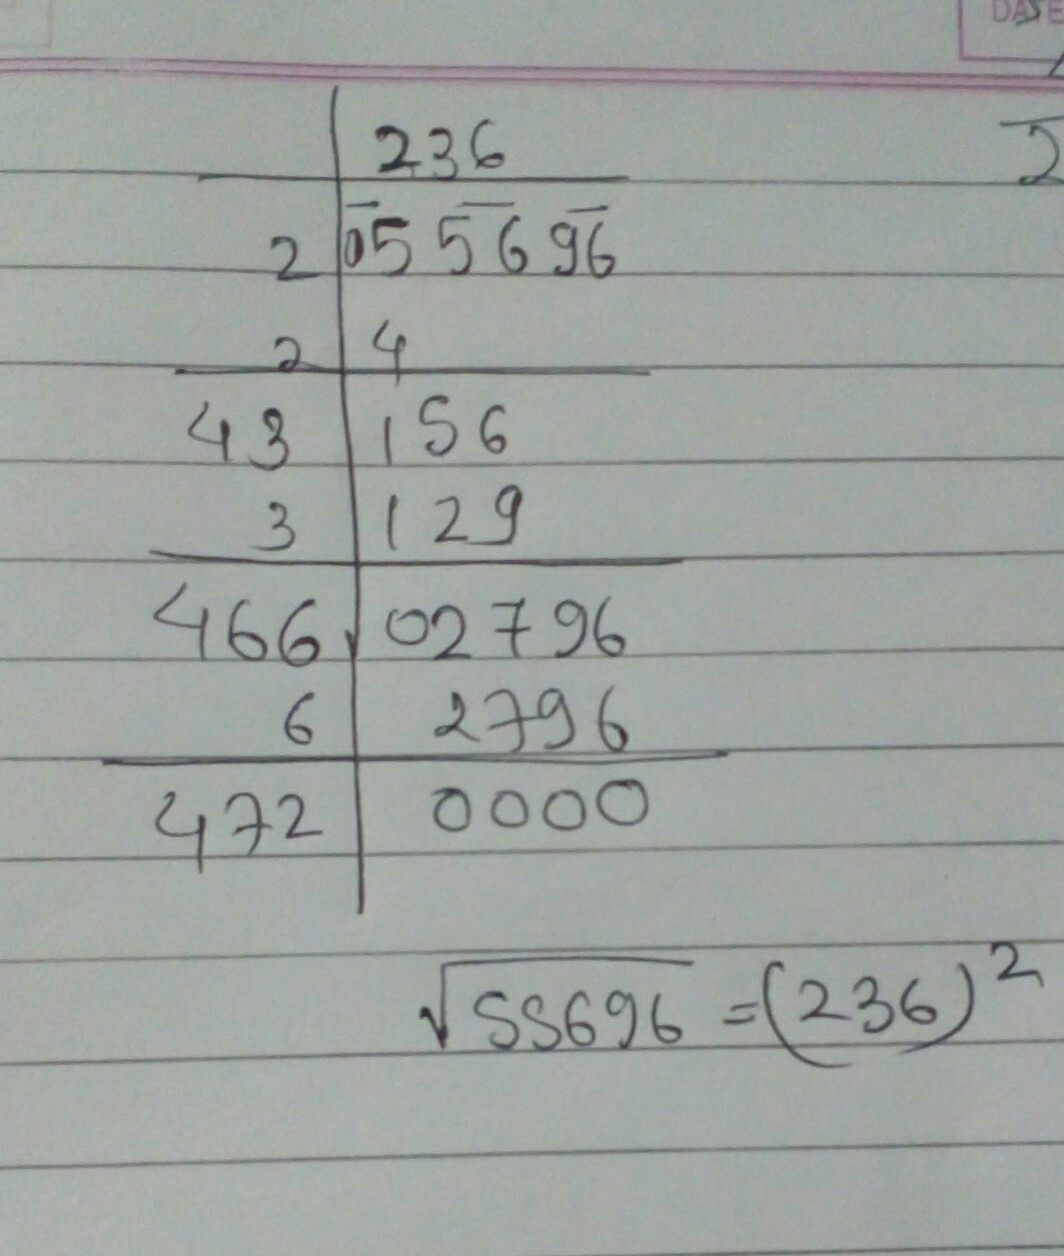 The square root of 55696 by division method - Brainly.in